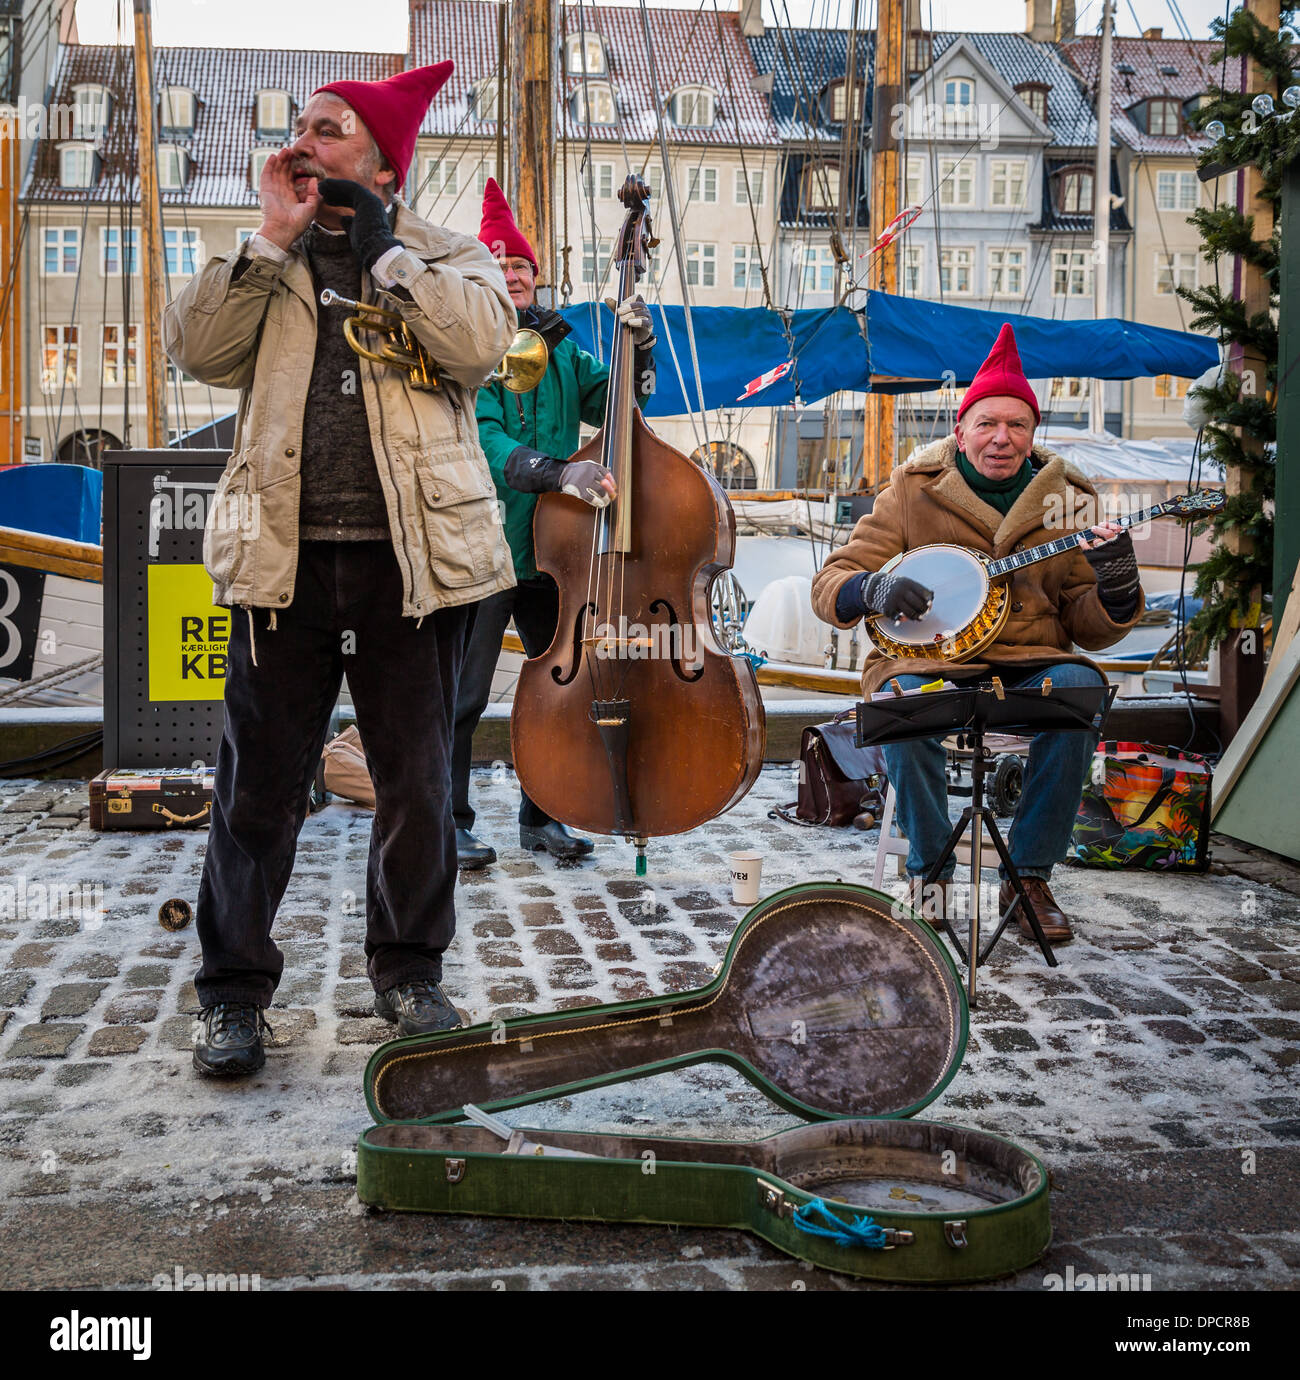 Three street musicians playing Christmas music, Nyhavn, Copenhagen, Denmark - Stock Image